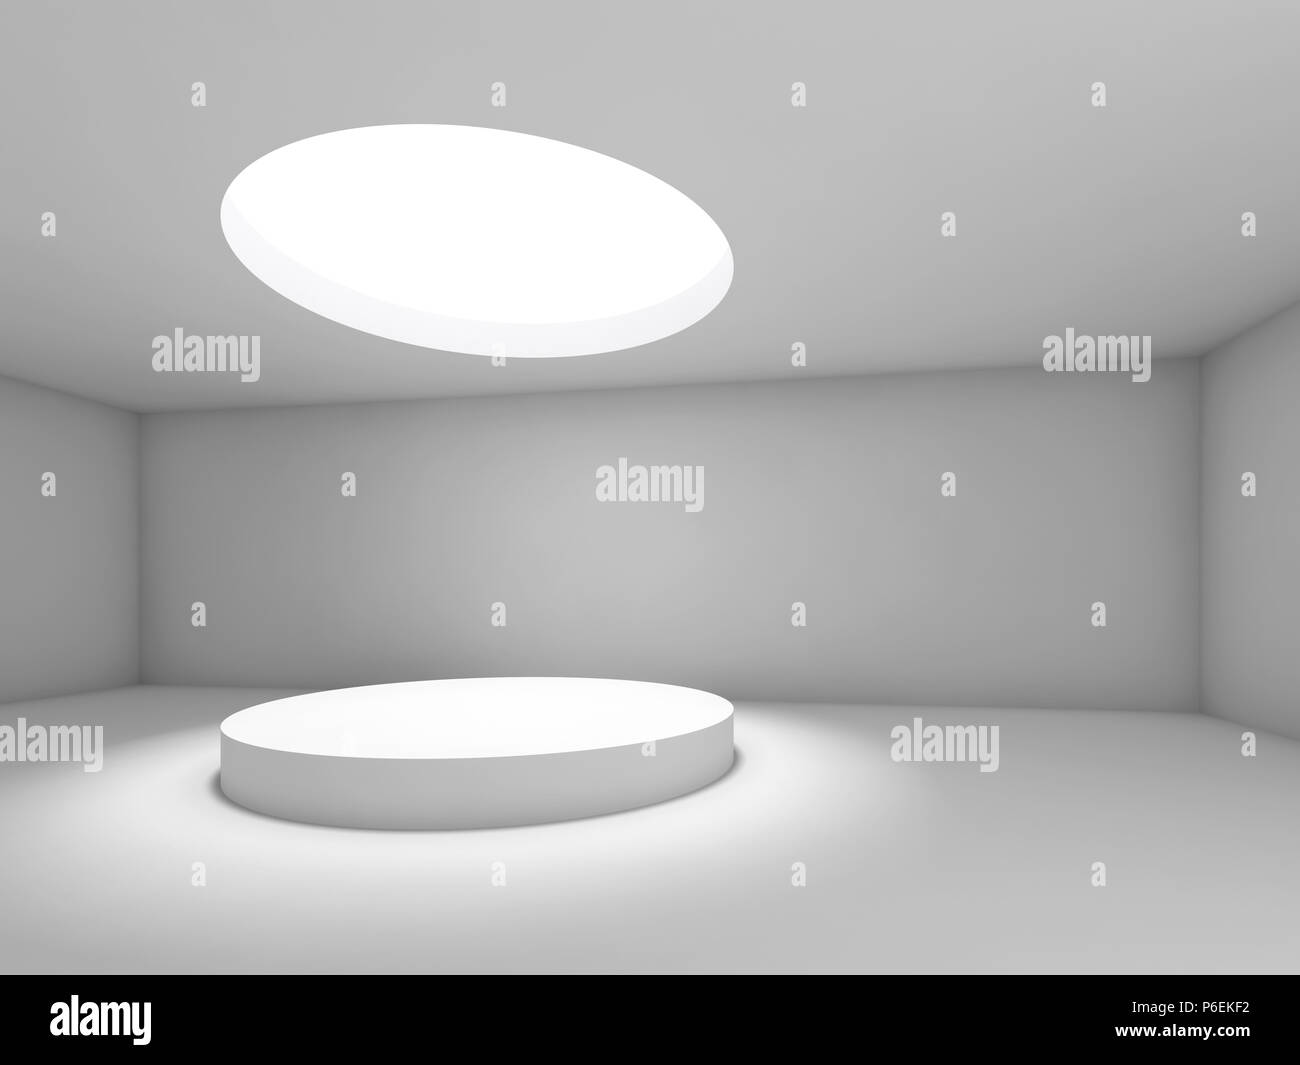 Pleasant Abstract Empty Interior Showroom With Round Ceiling Light Download Free Architecture Designs Scobabritishbridgeorg